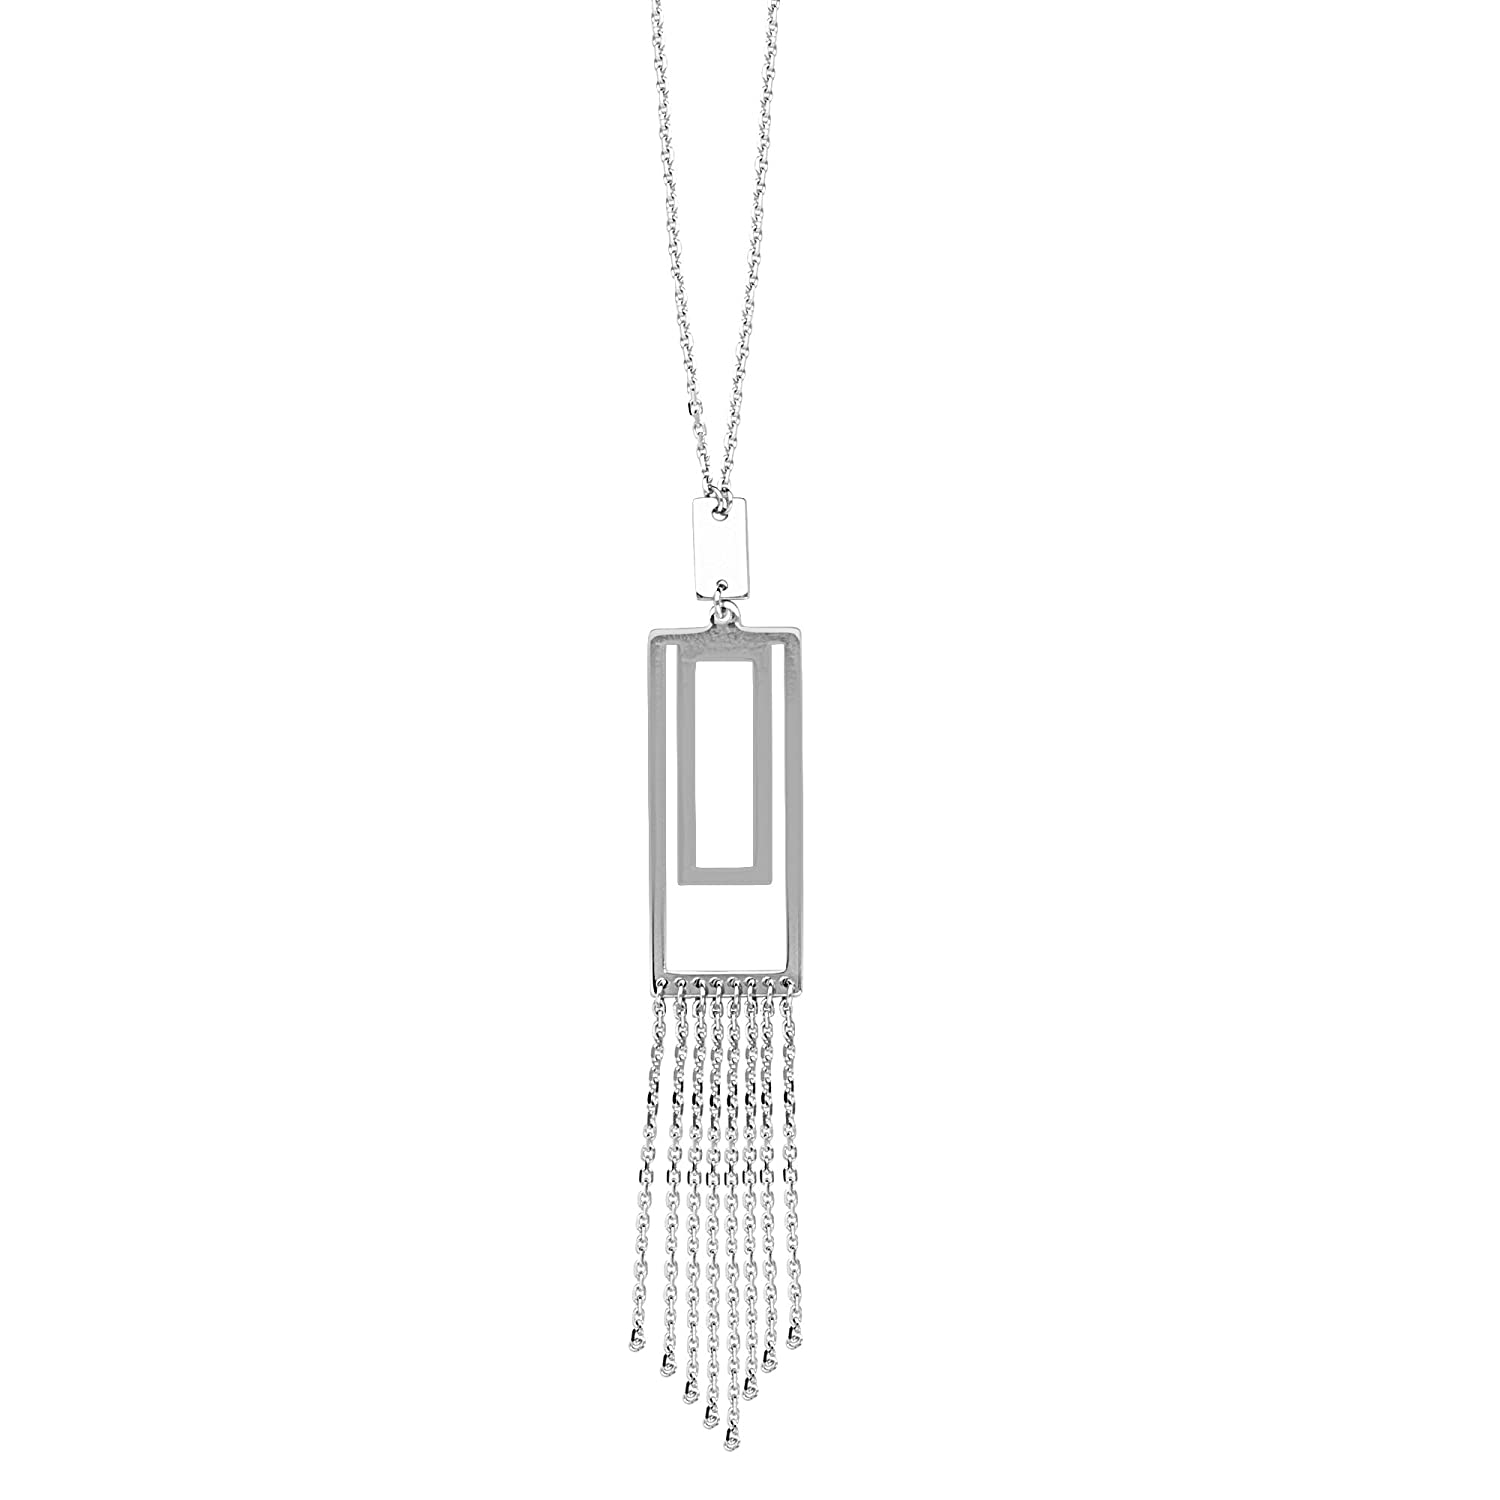 DiamondJewelryNY Silver Pendant Adj.Dbl Rectangle Lariat Necklace